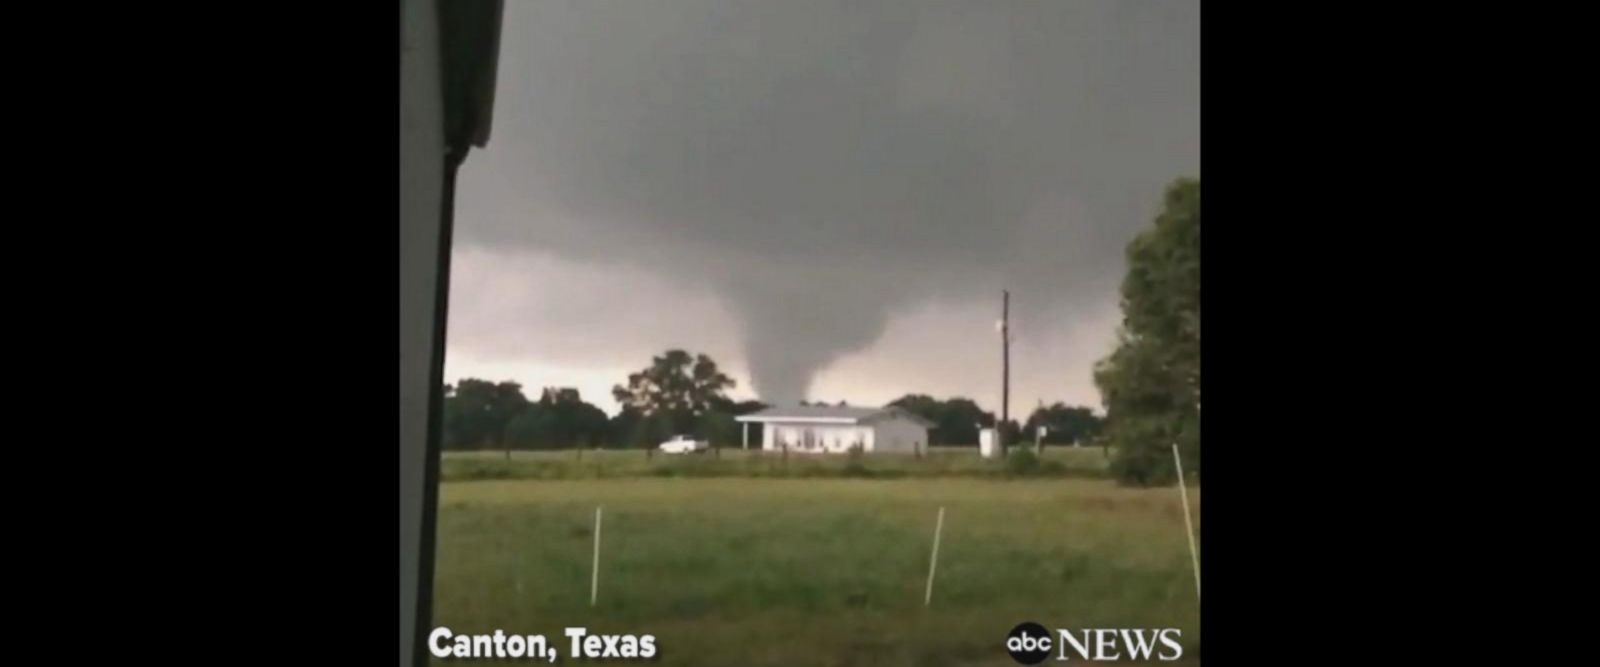 VIDEO: Tornado spotted in East Texas, where storms are blamed for deaths of at least 4 people